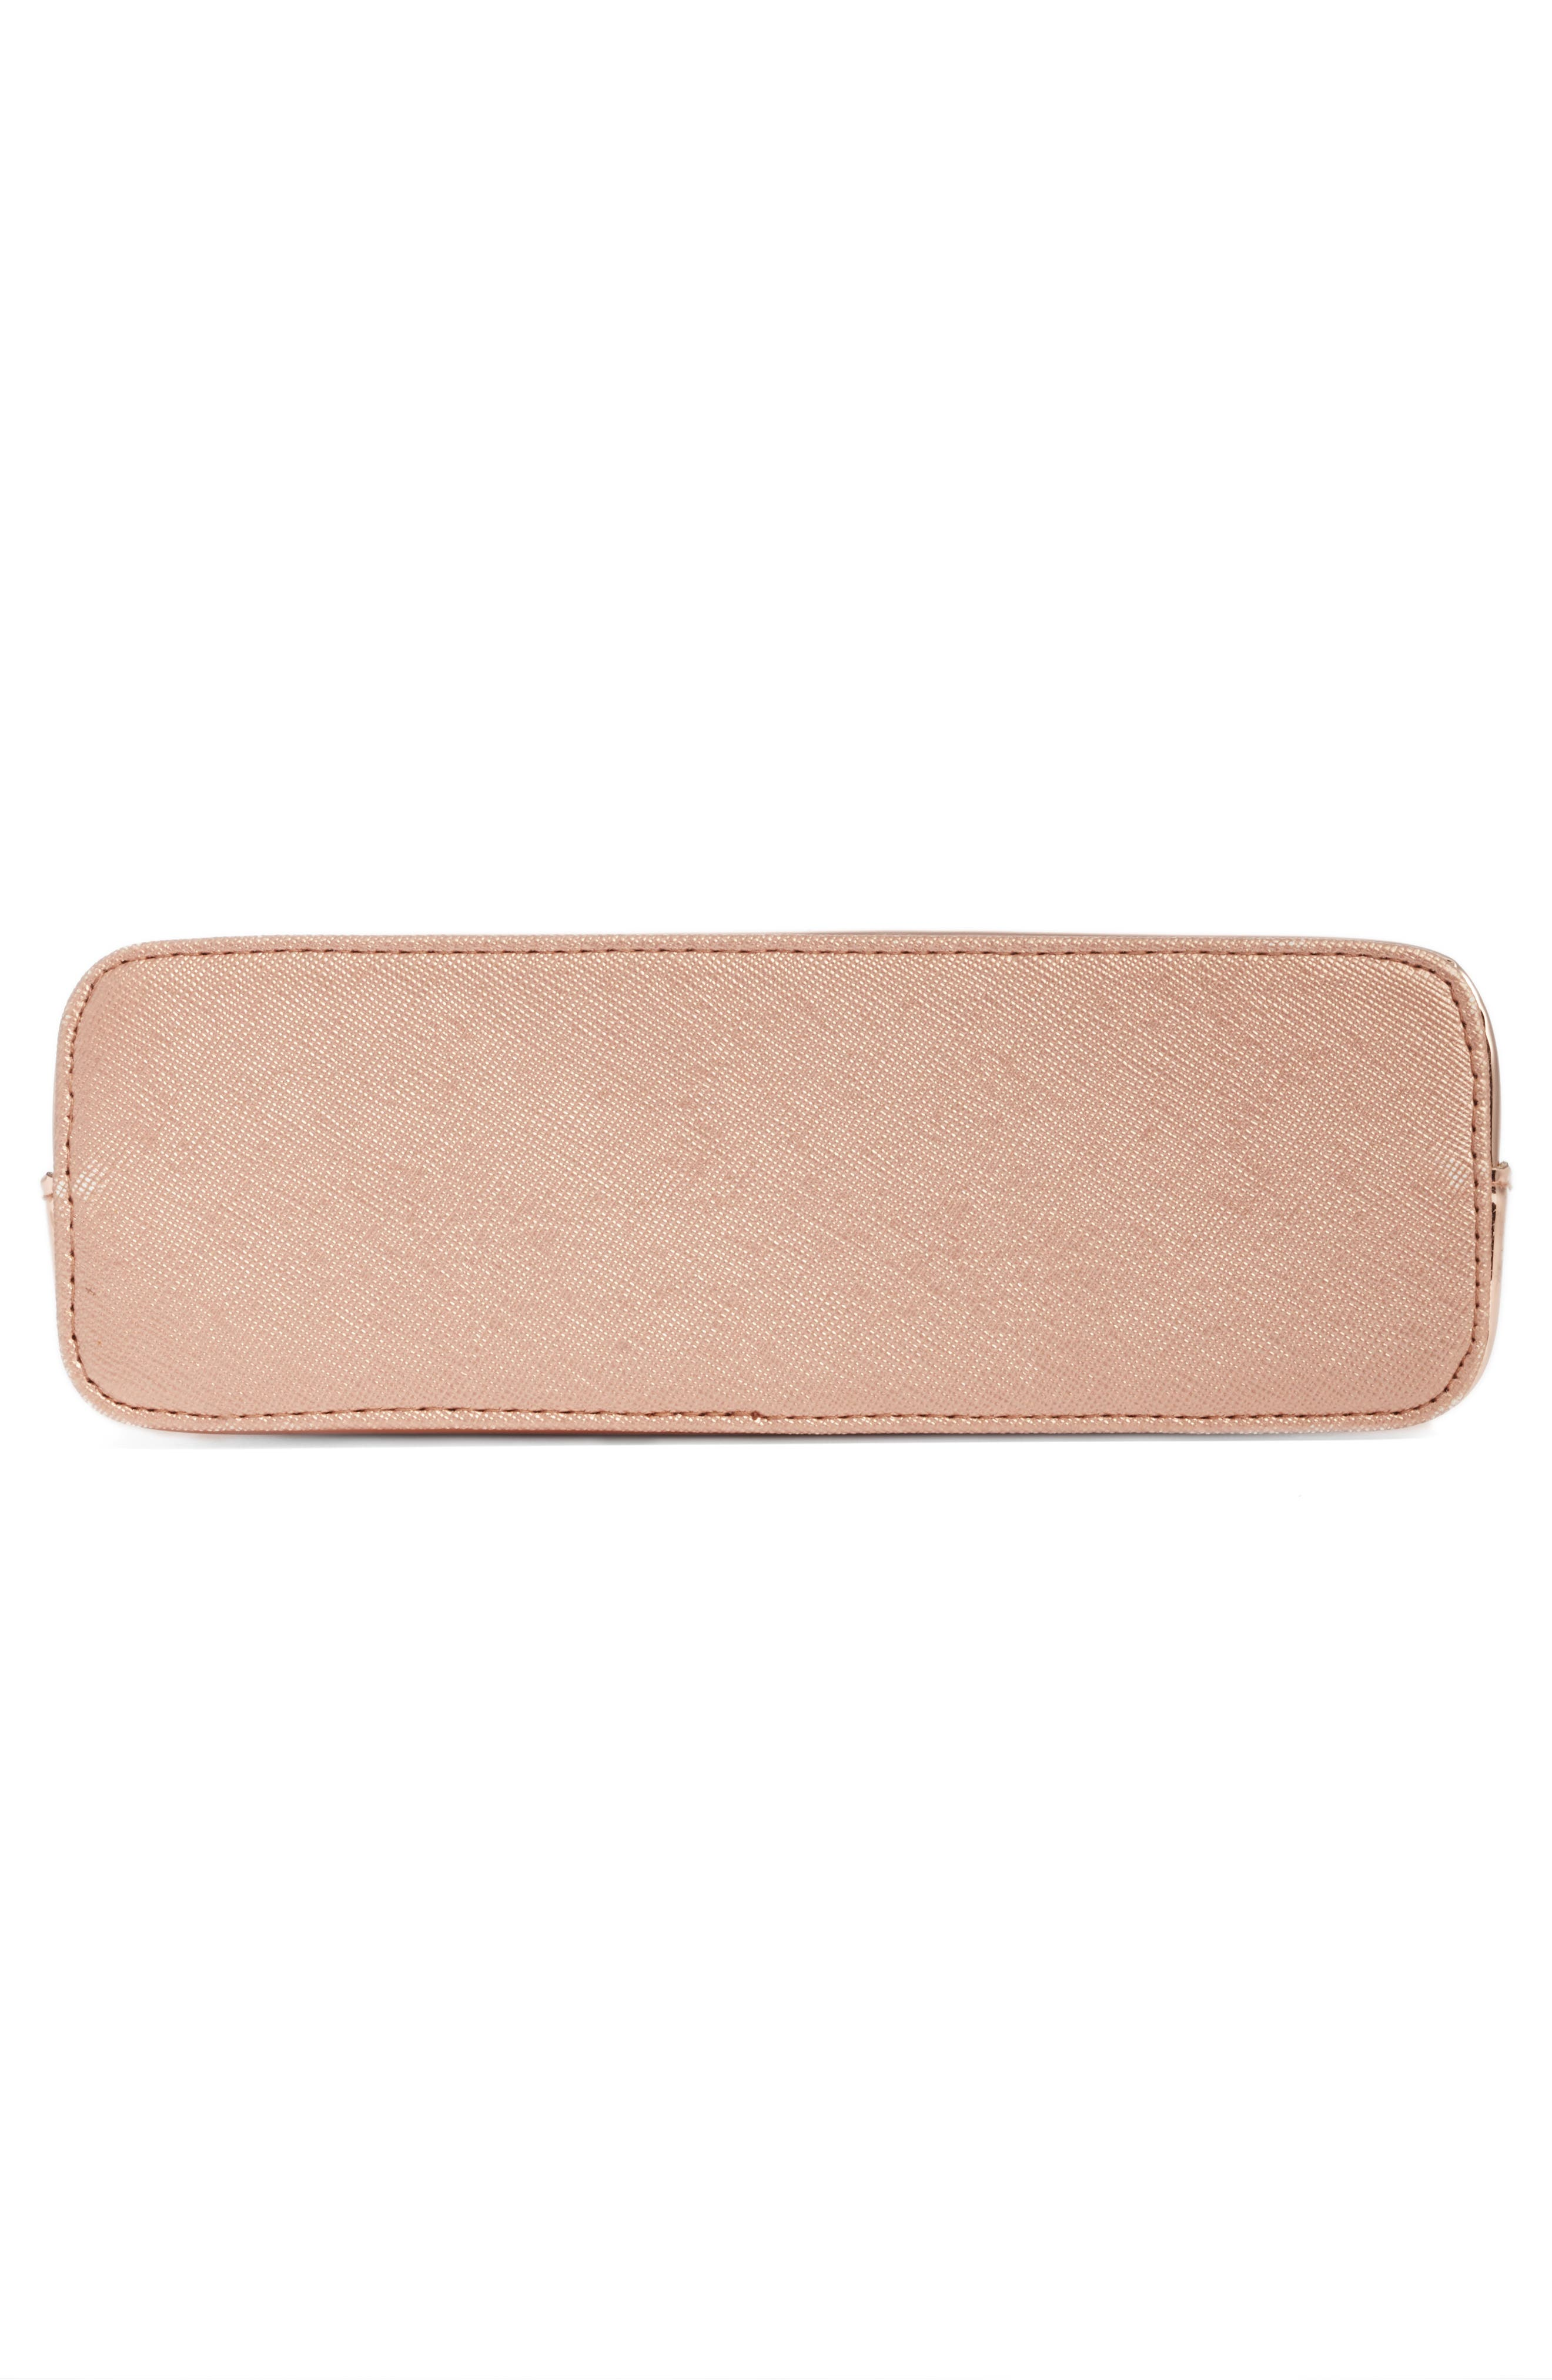 Lindsay Metallic Cosmetics Case,                             Alternate thumbnail 5, color,                             Rose Gold